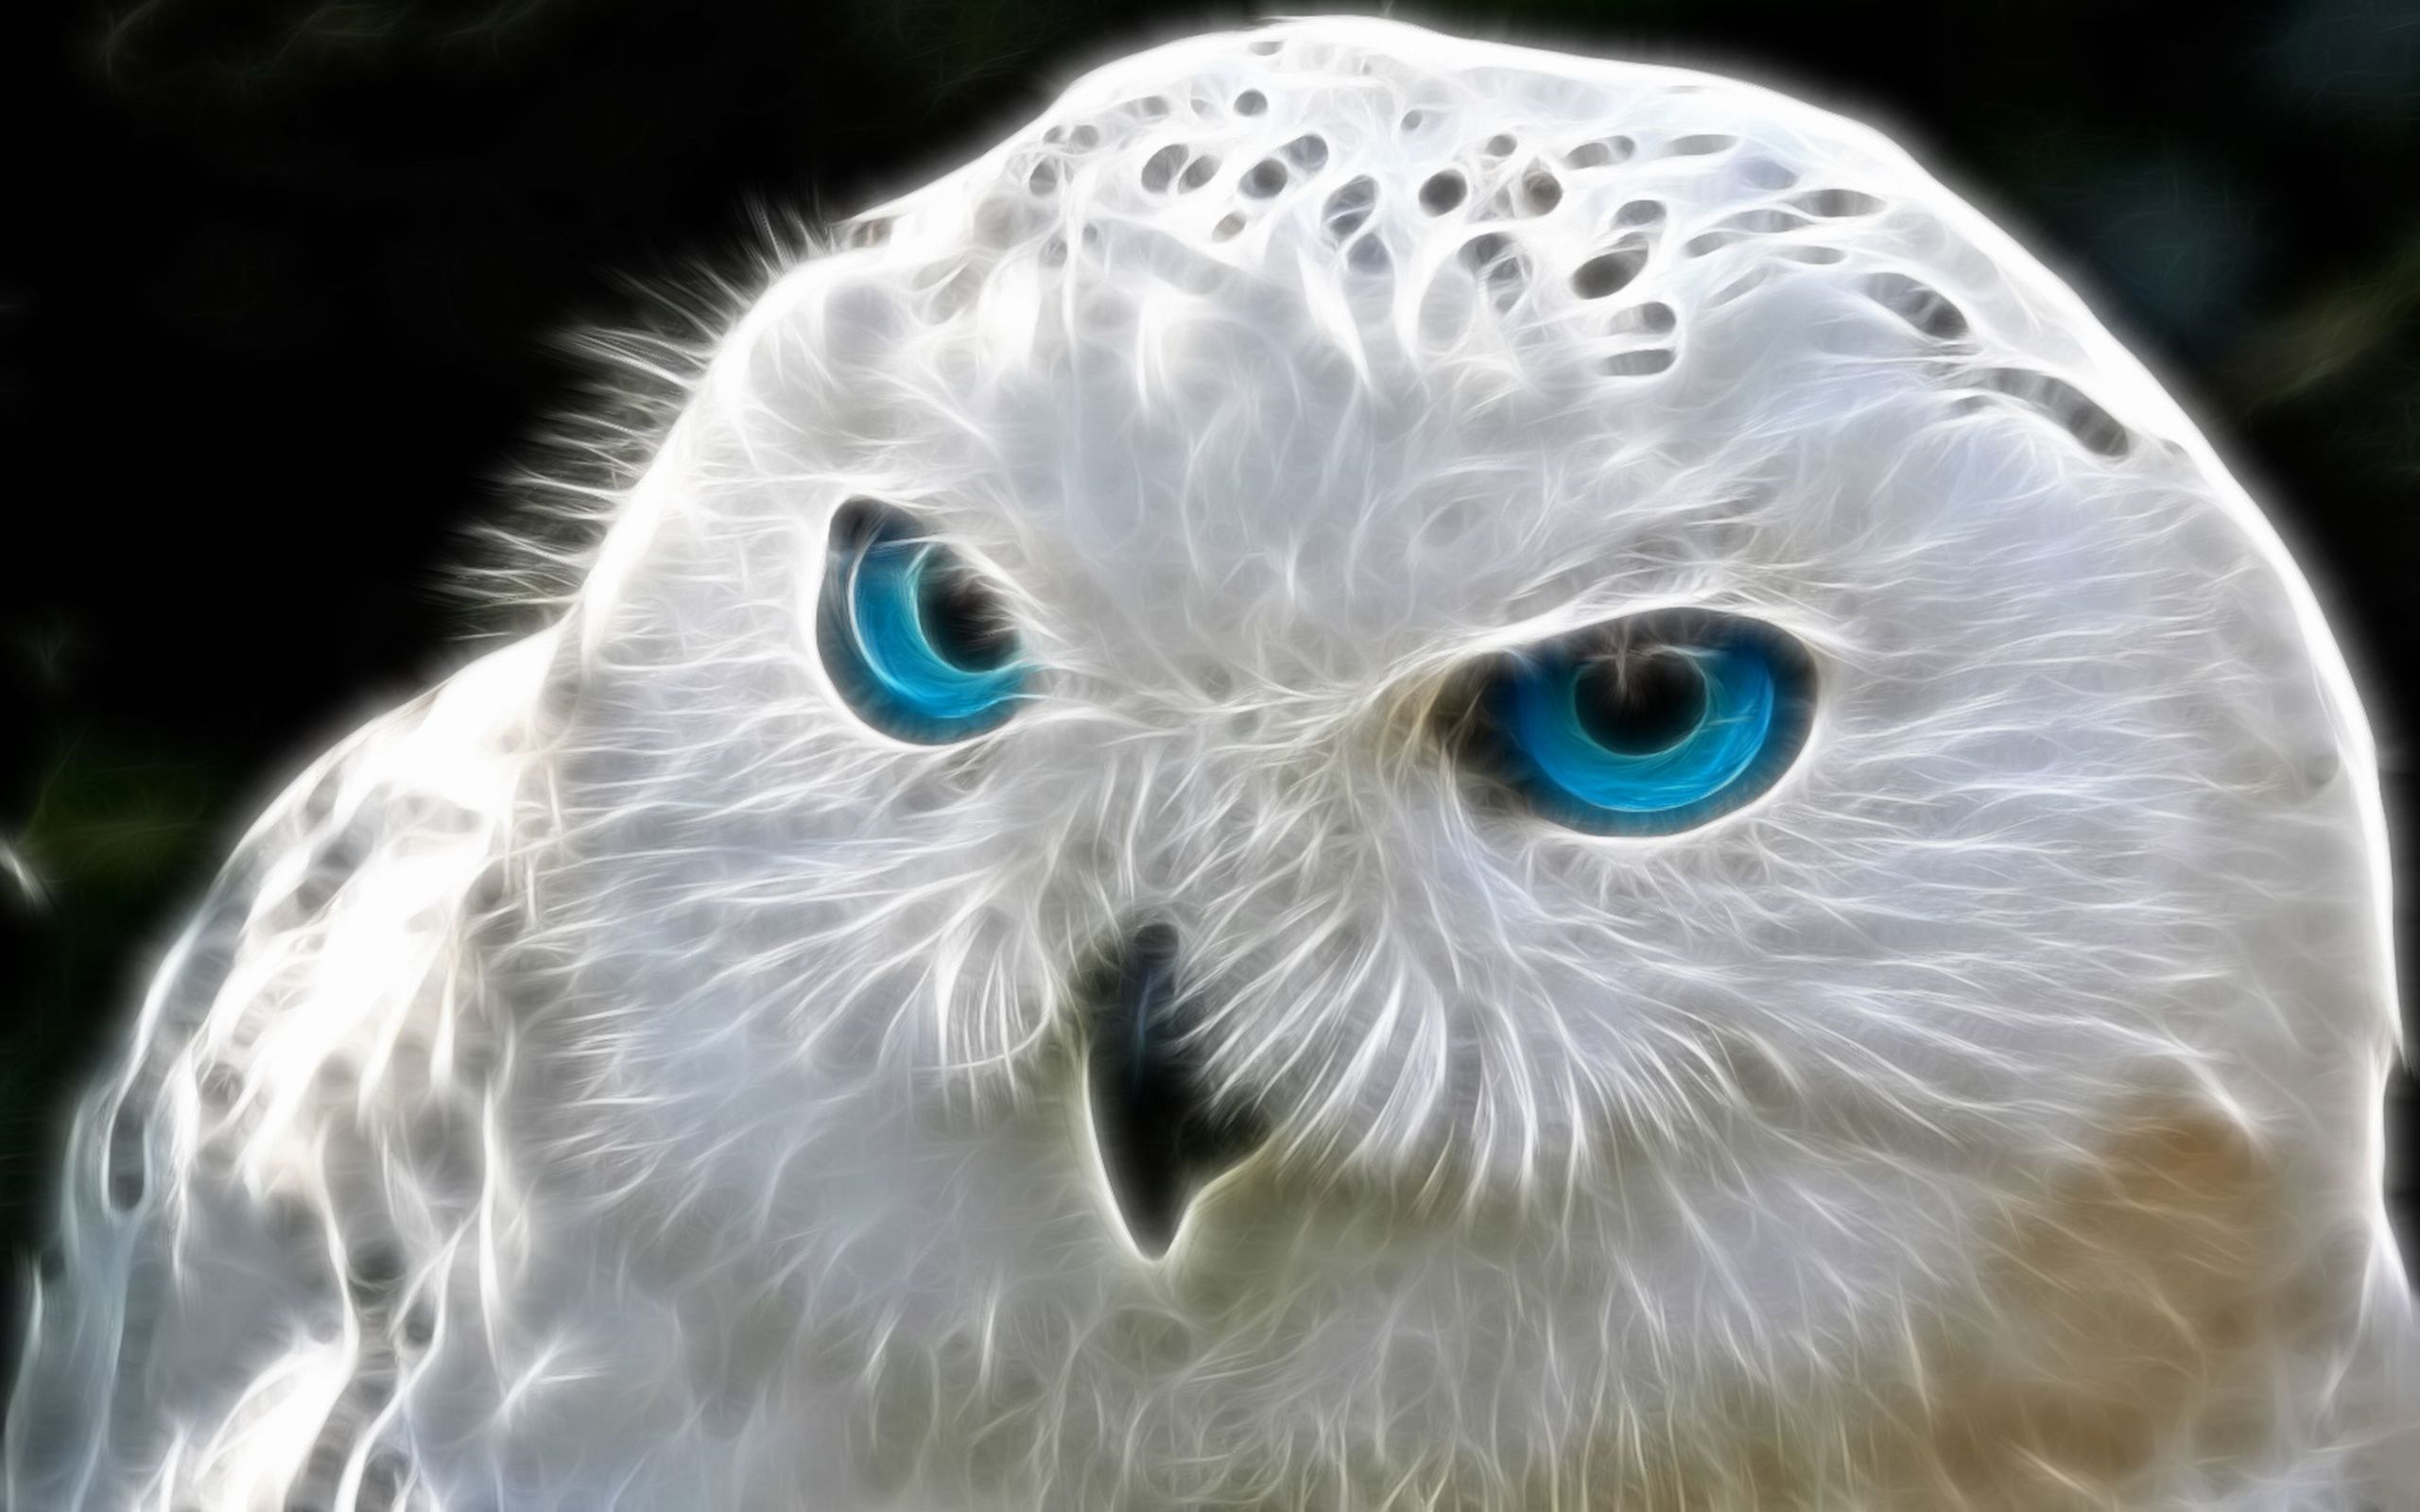 2048x1152 Snowly Owl Art 2048x1152 Resolution Hd 4k